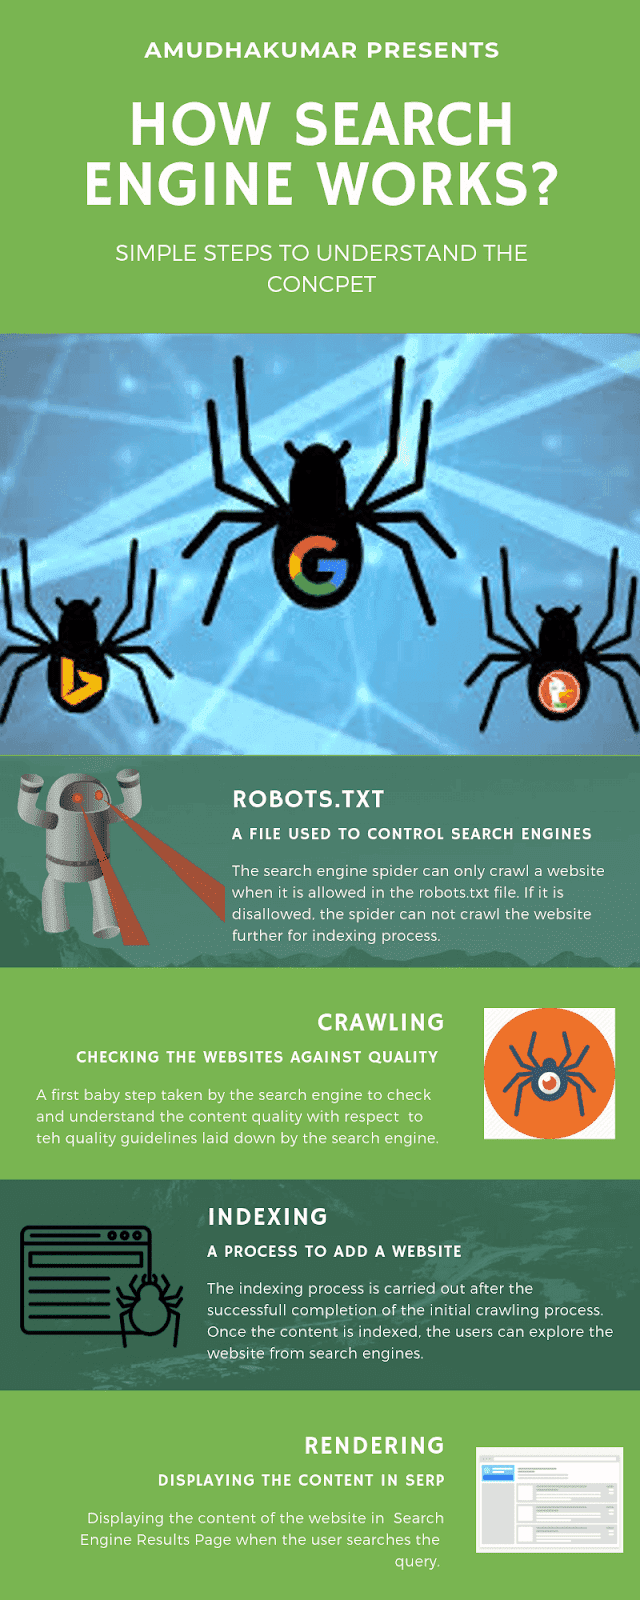 How Search Engine Works Infographics - Google-yahoo-bing-duckduckgo-yandex-amudhakumar